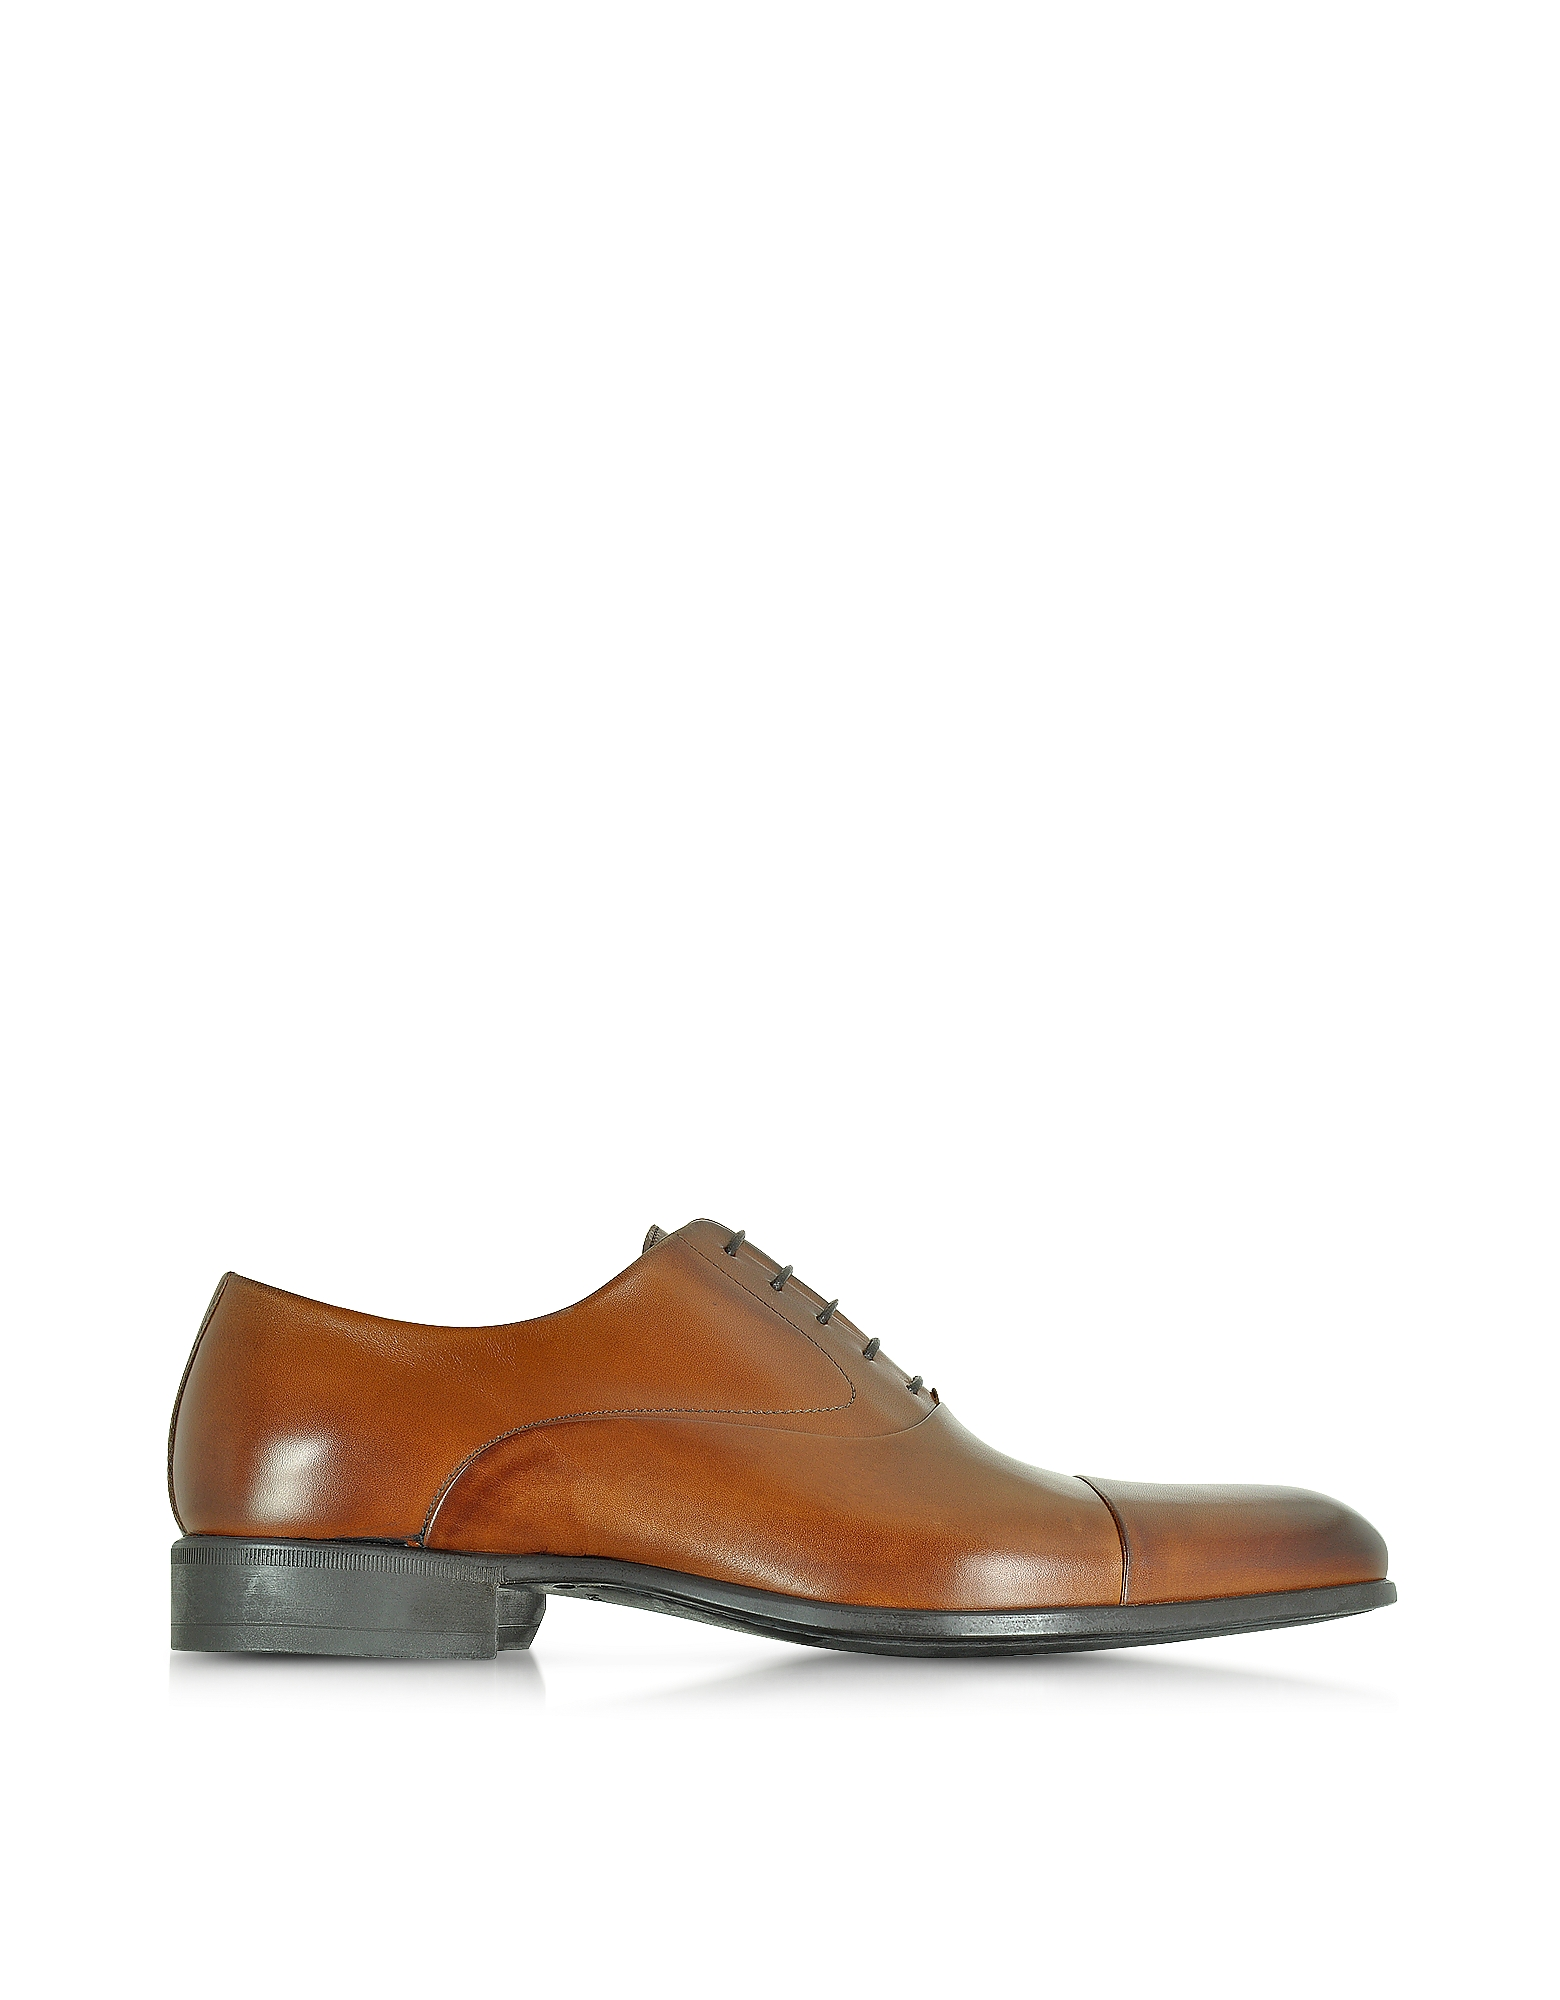 Moreschi Shoes, Dublin Tan Calf Leather Oxford Shoes w/Rubber Sole